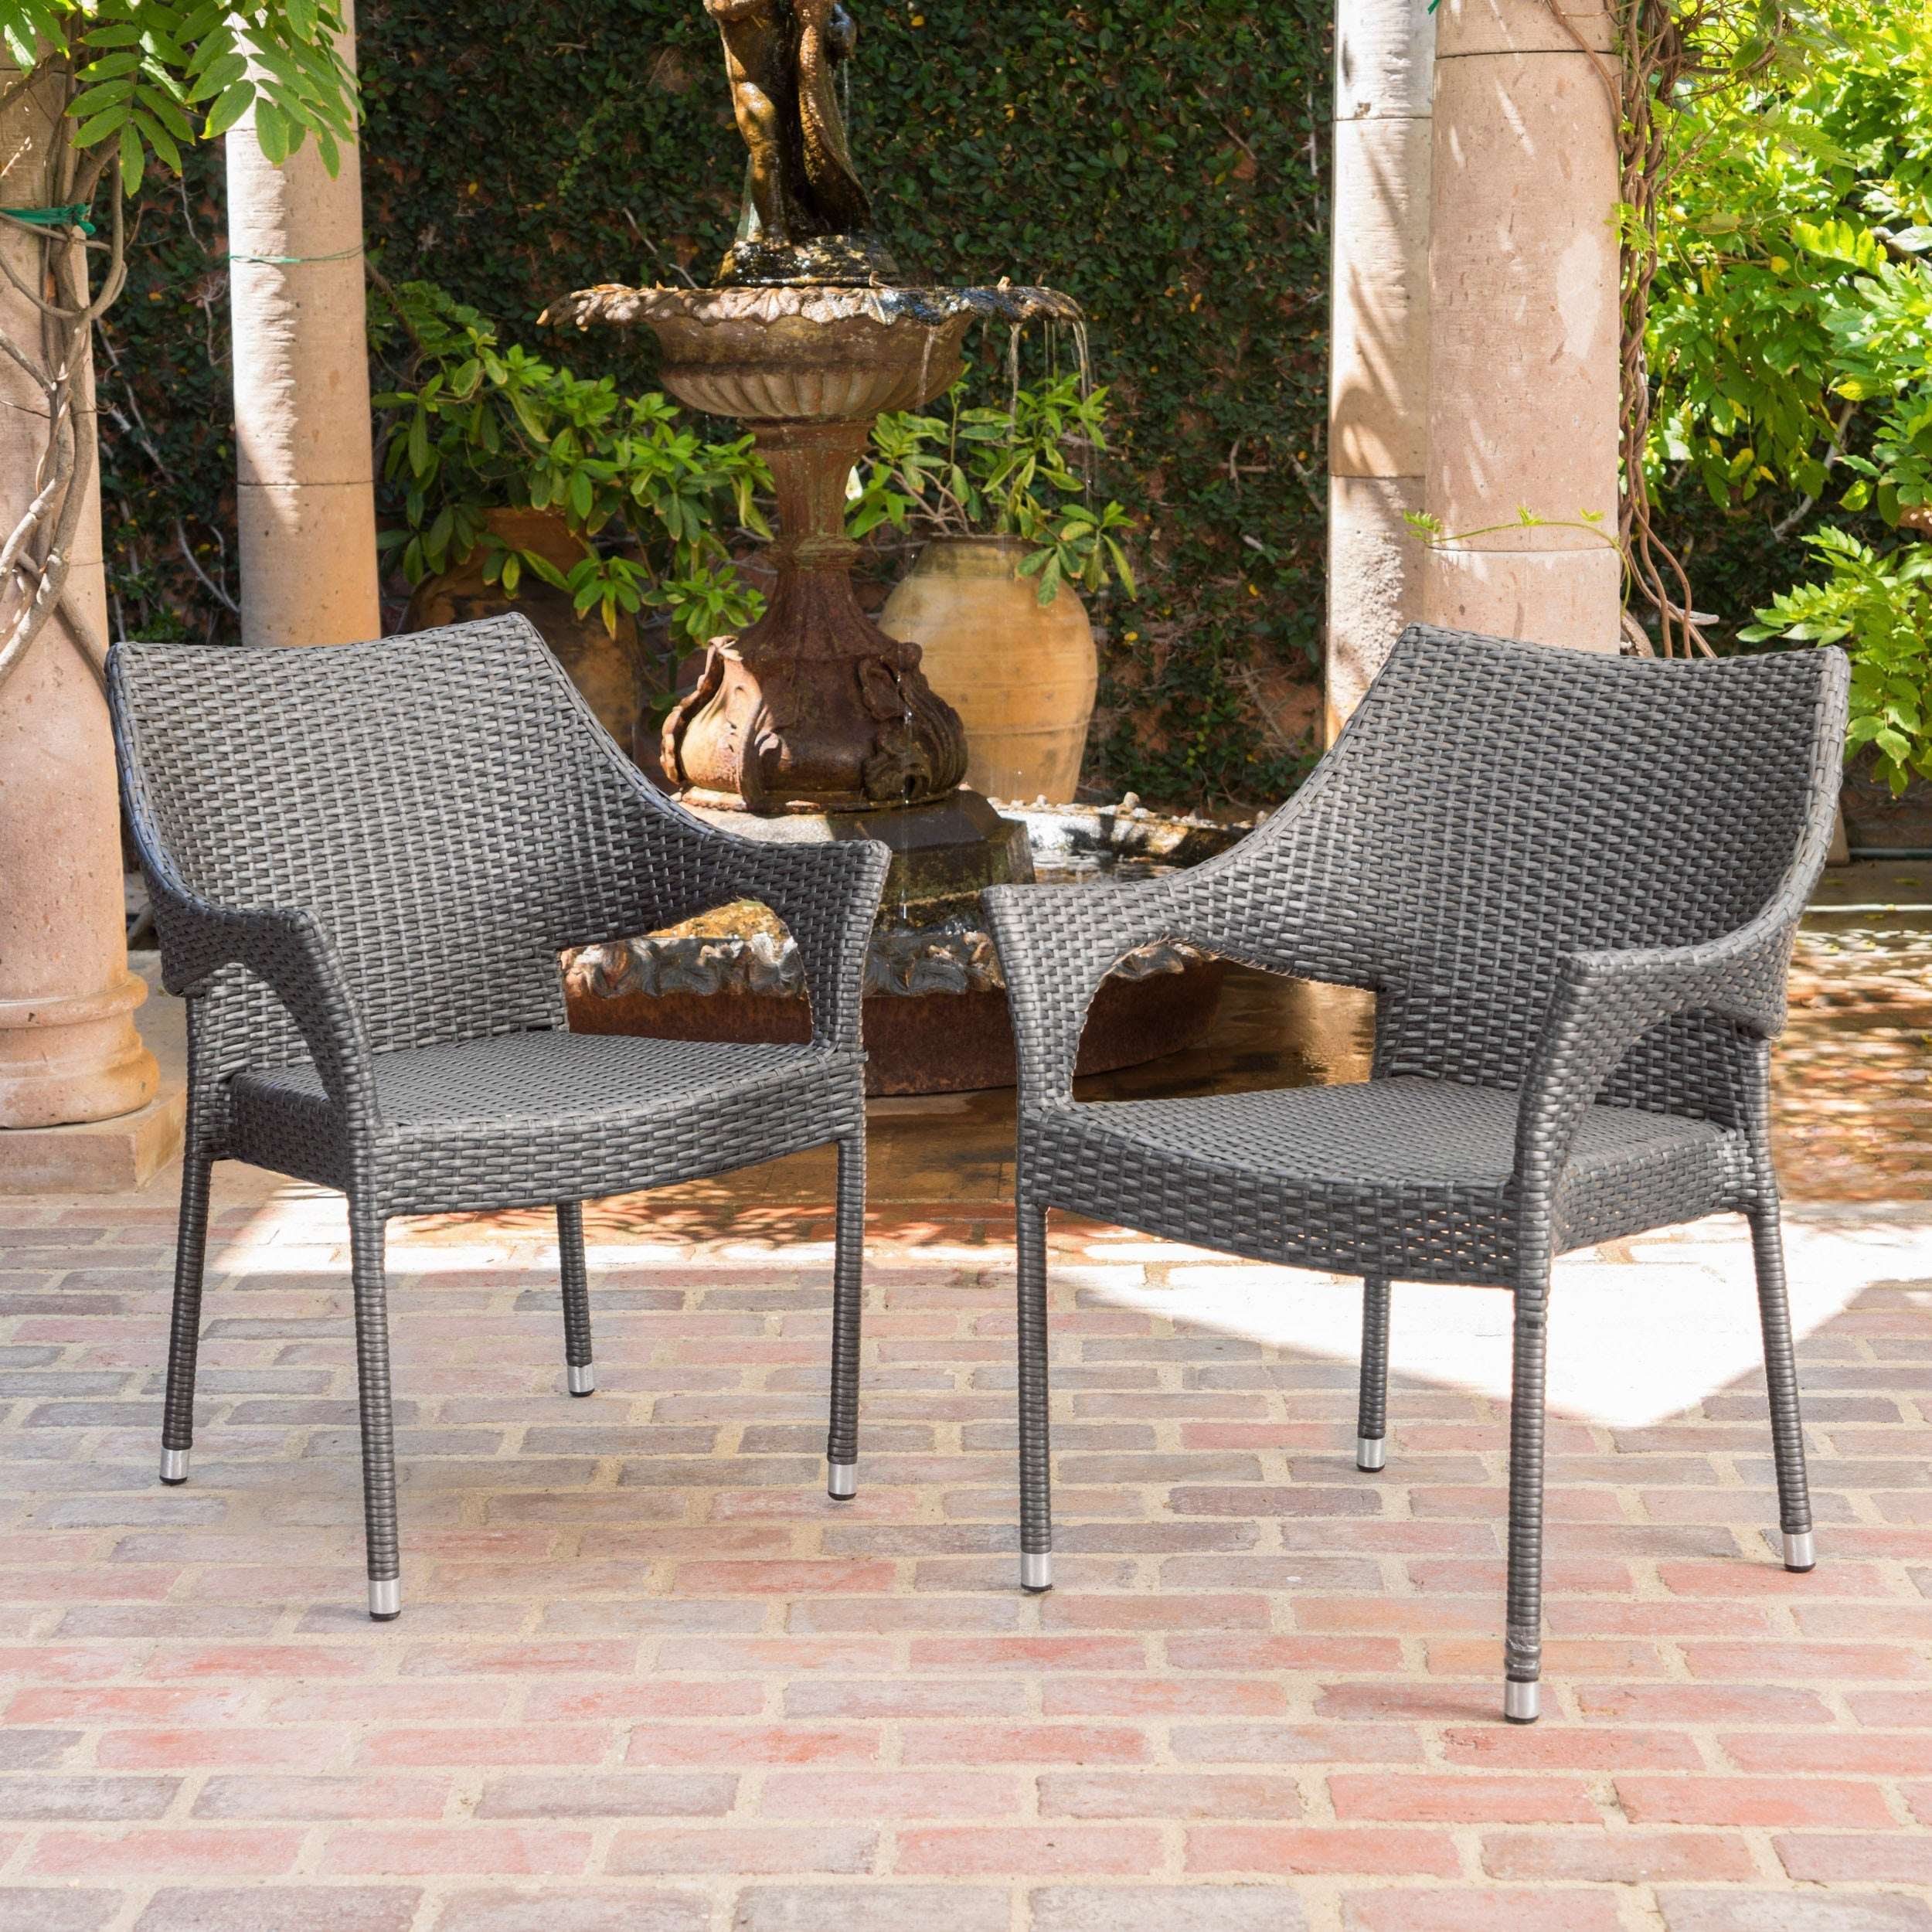 home design chair chairs clearance images june pictures ideas furniture outdoor luxury and resin patio beautiful wicker of